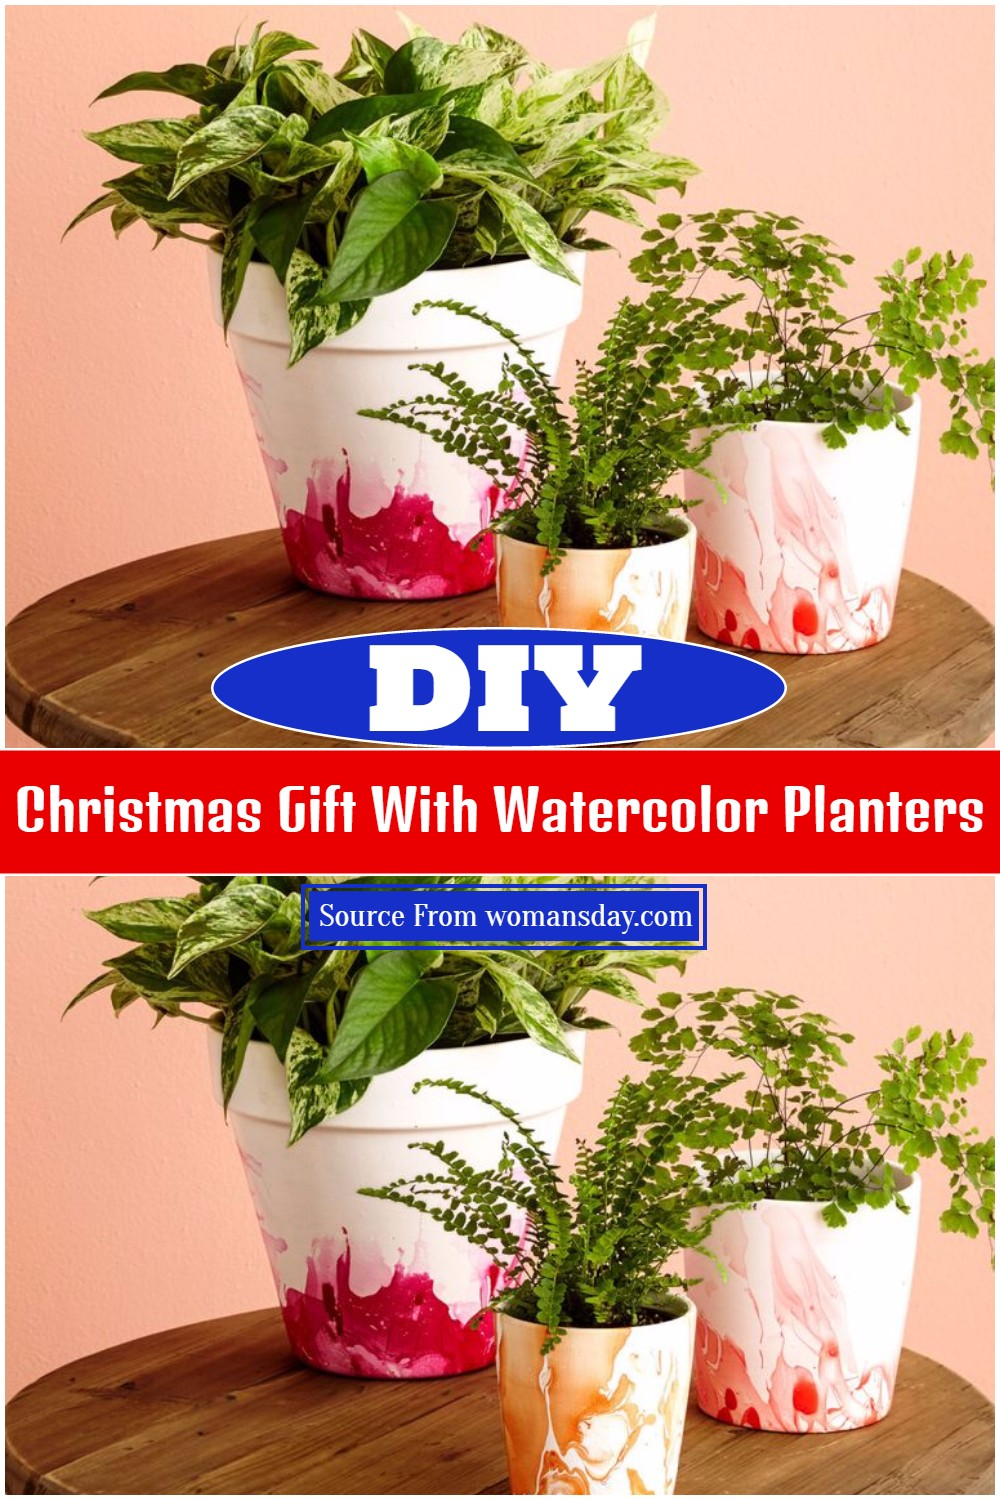 Christmas Gift With DIY Watercolor Planters